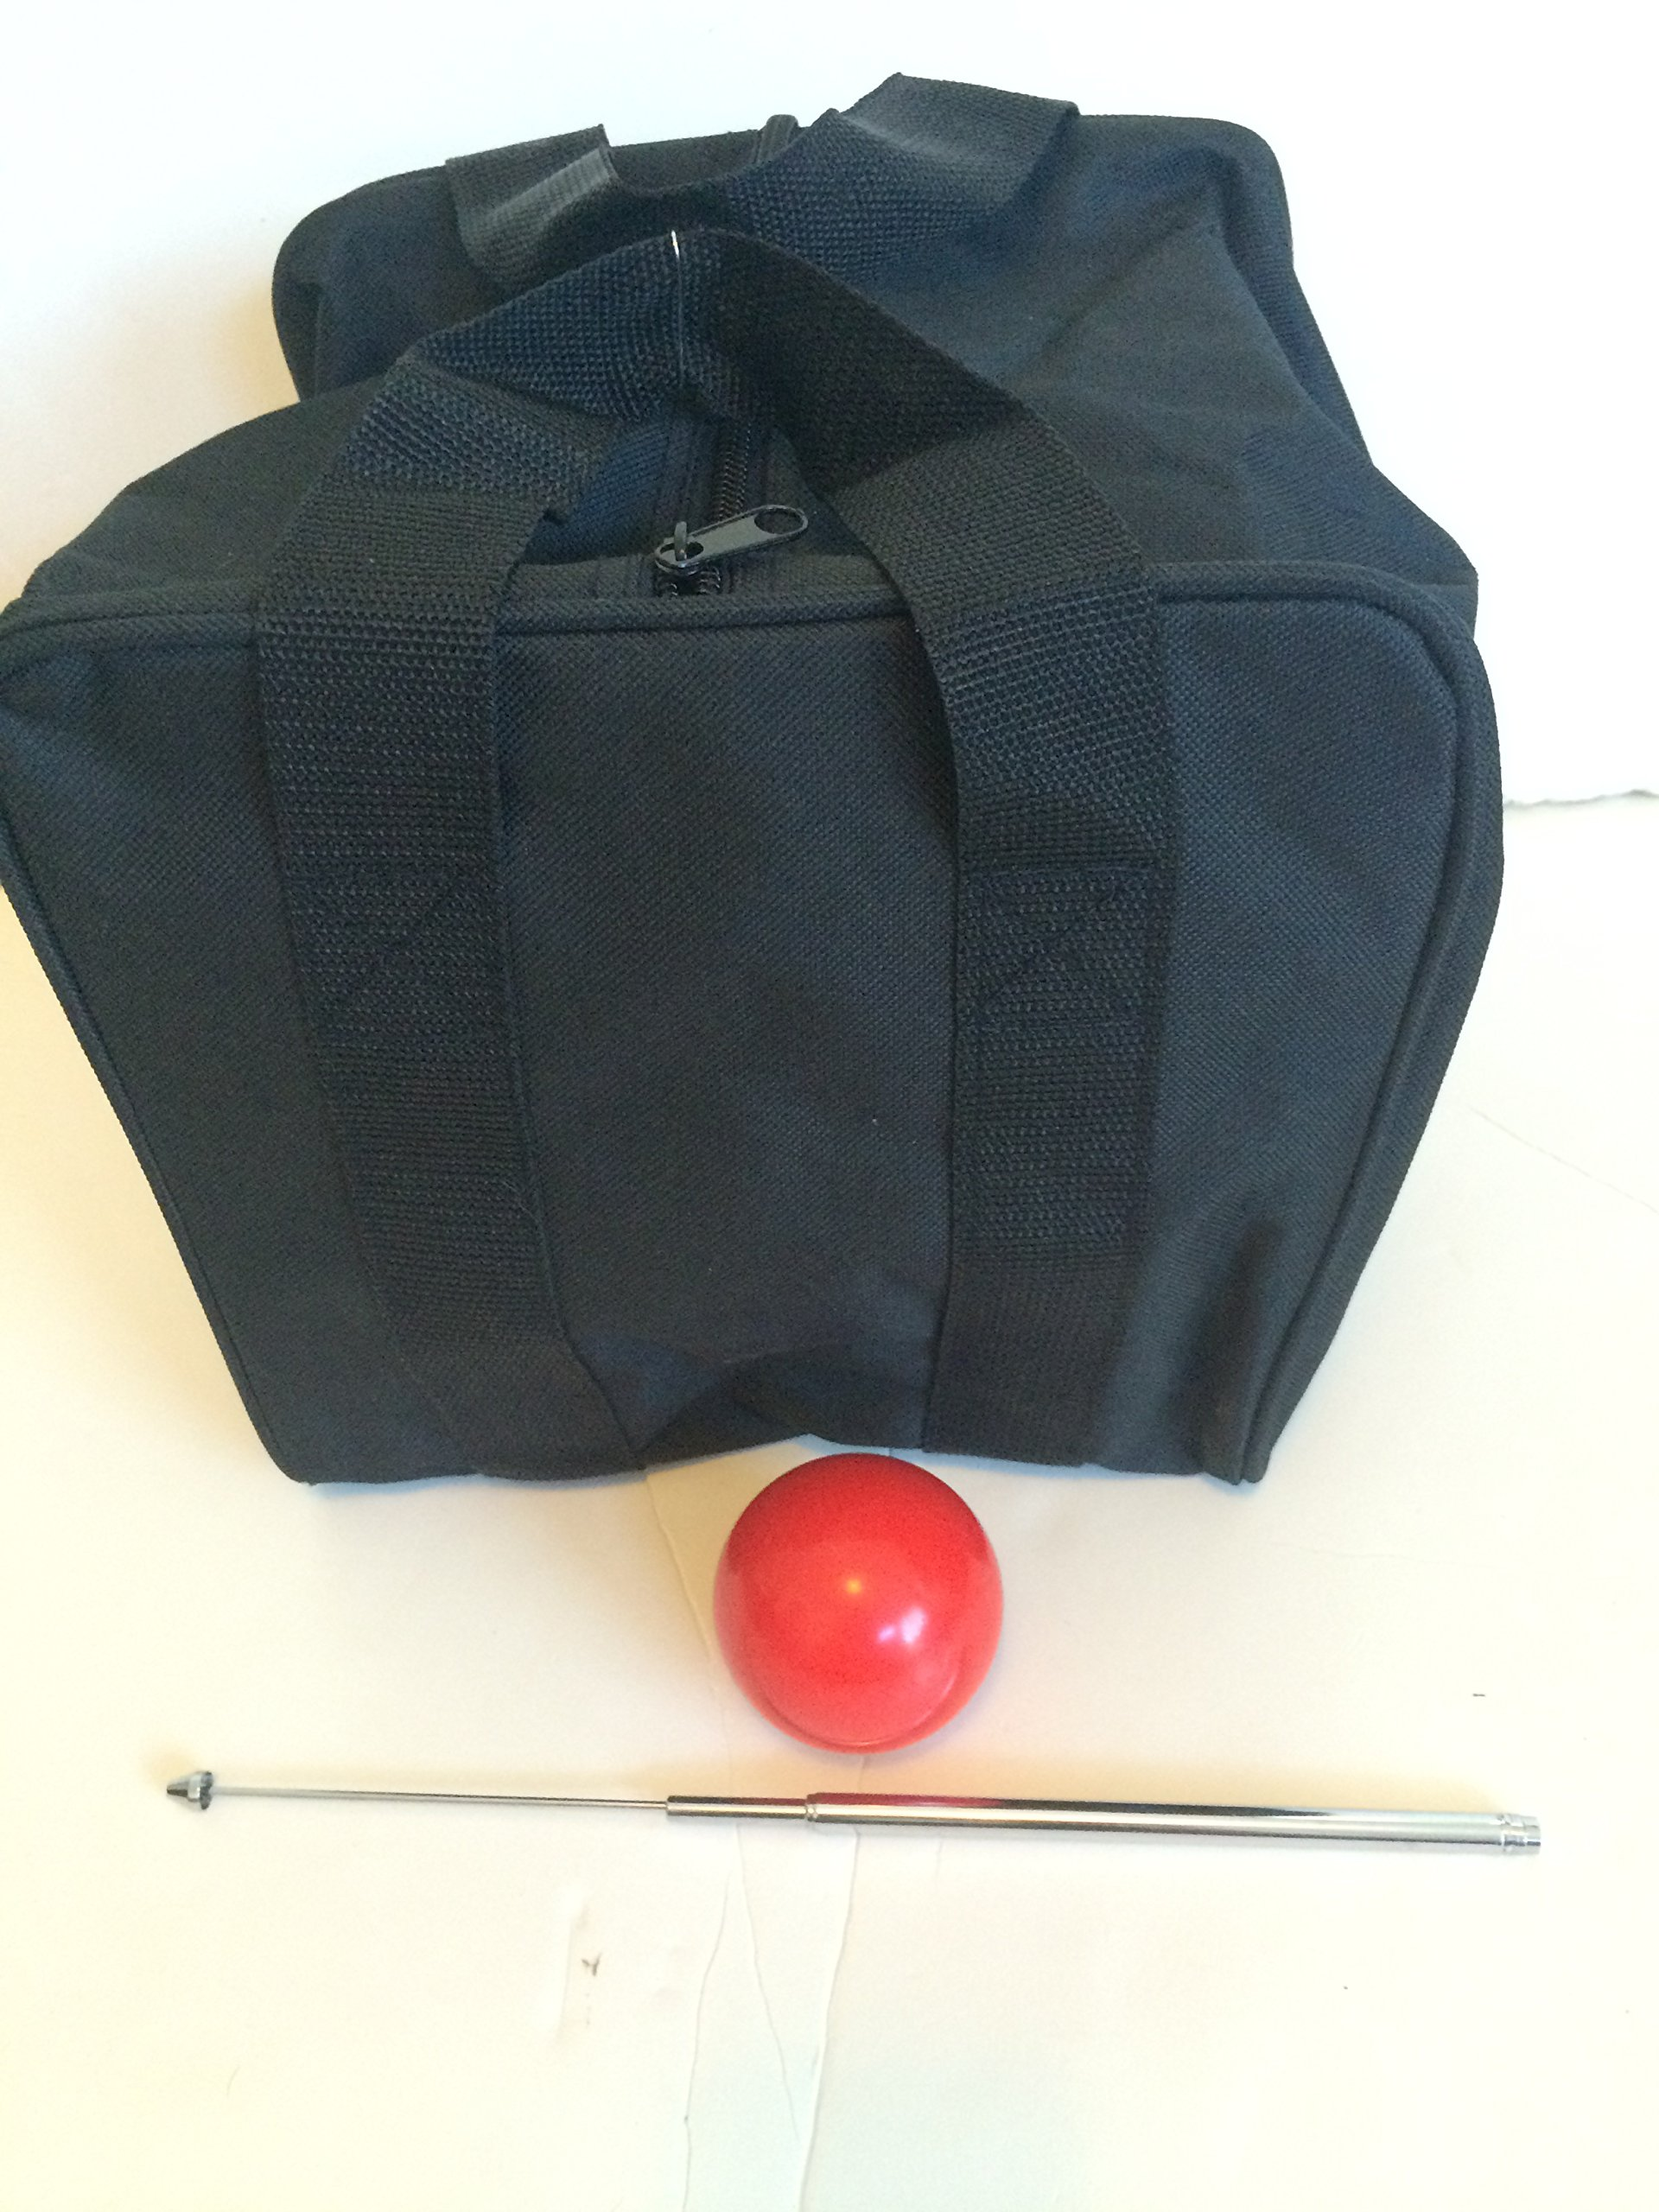 Unique Bocce Accessories Package - Extra Heavy Duty Nylon Bocce Bag (Black with Black Handles), red pallina, Extendable Measuring Device